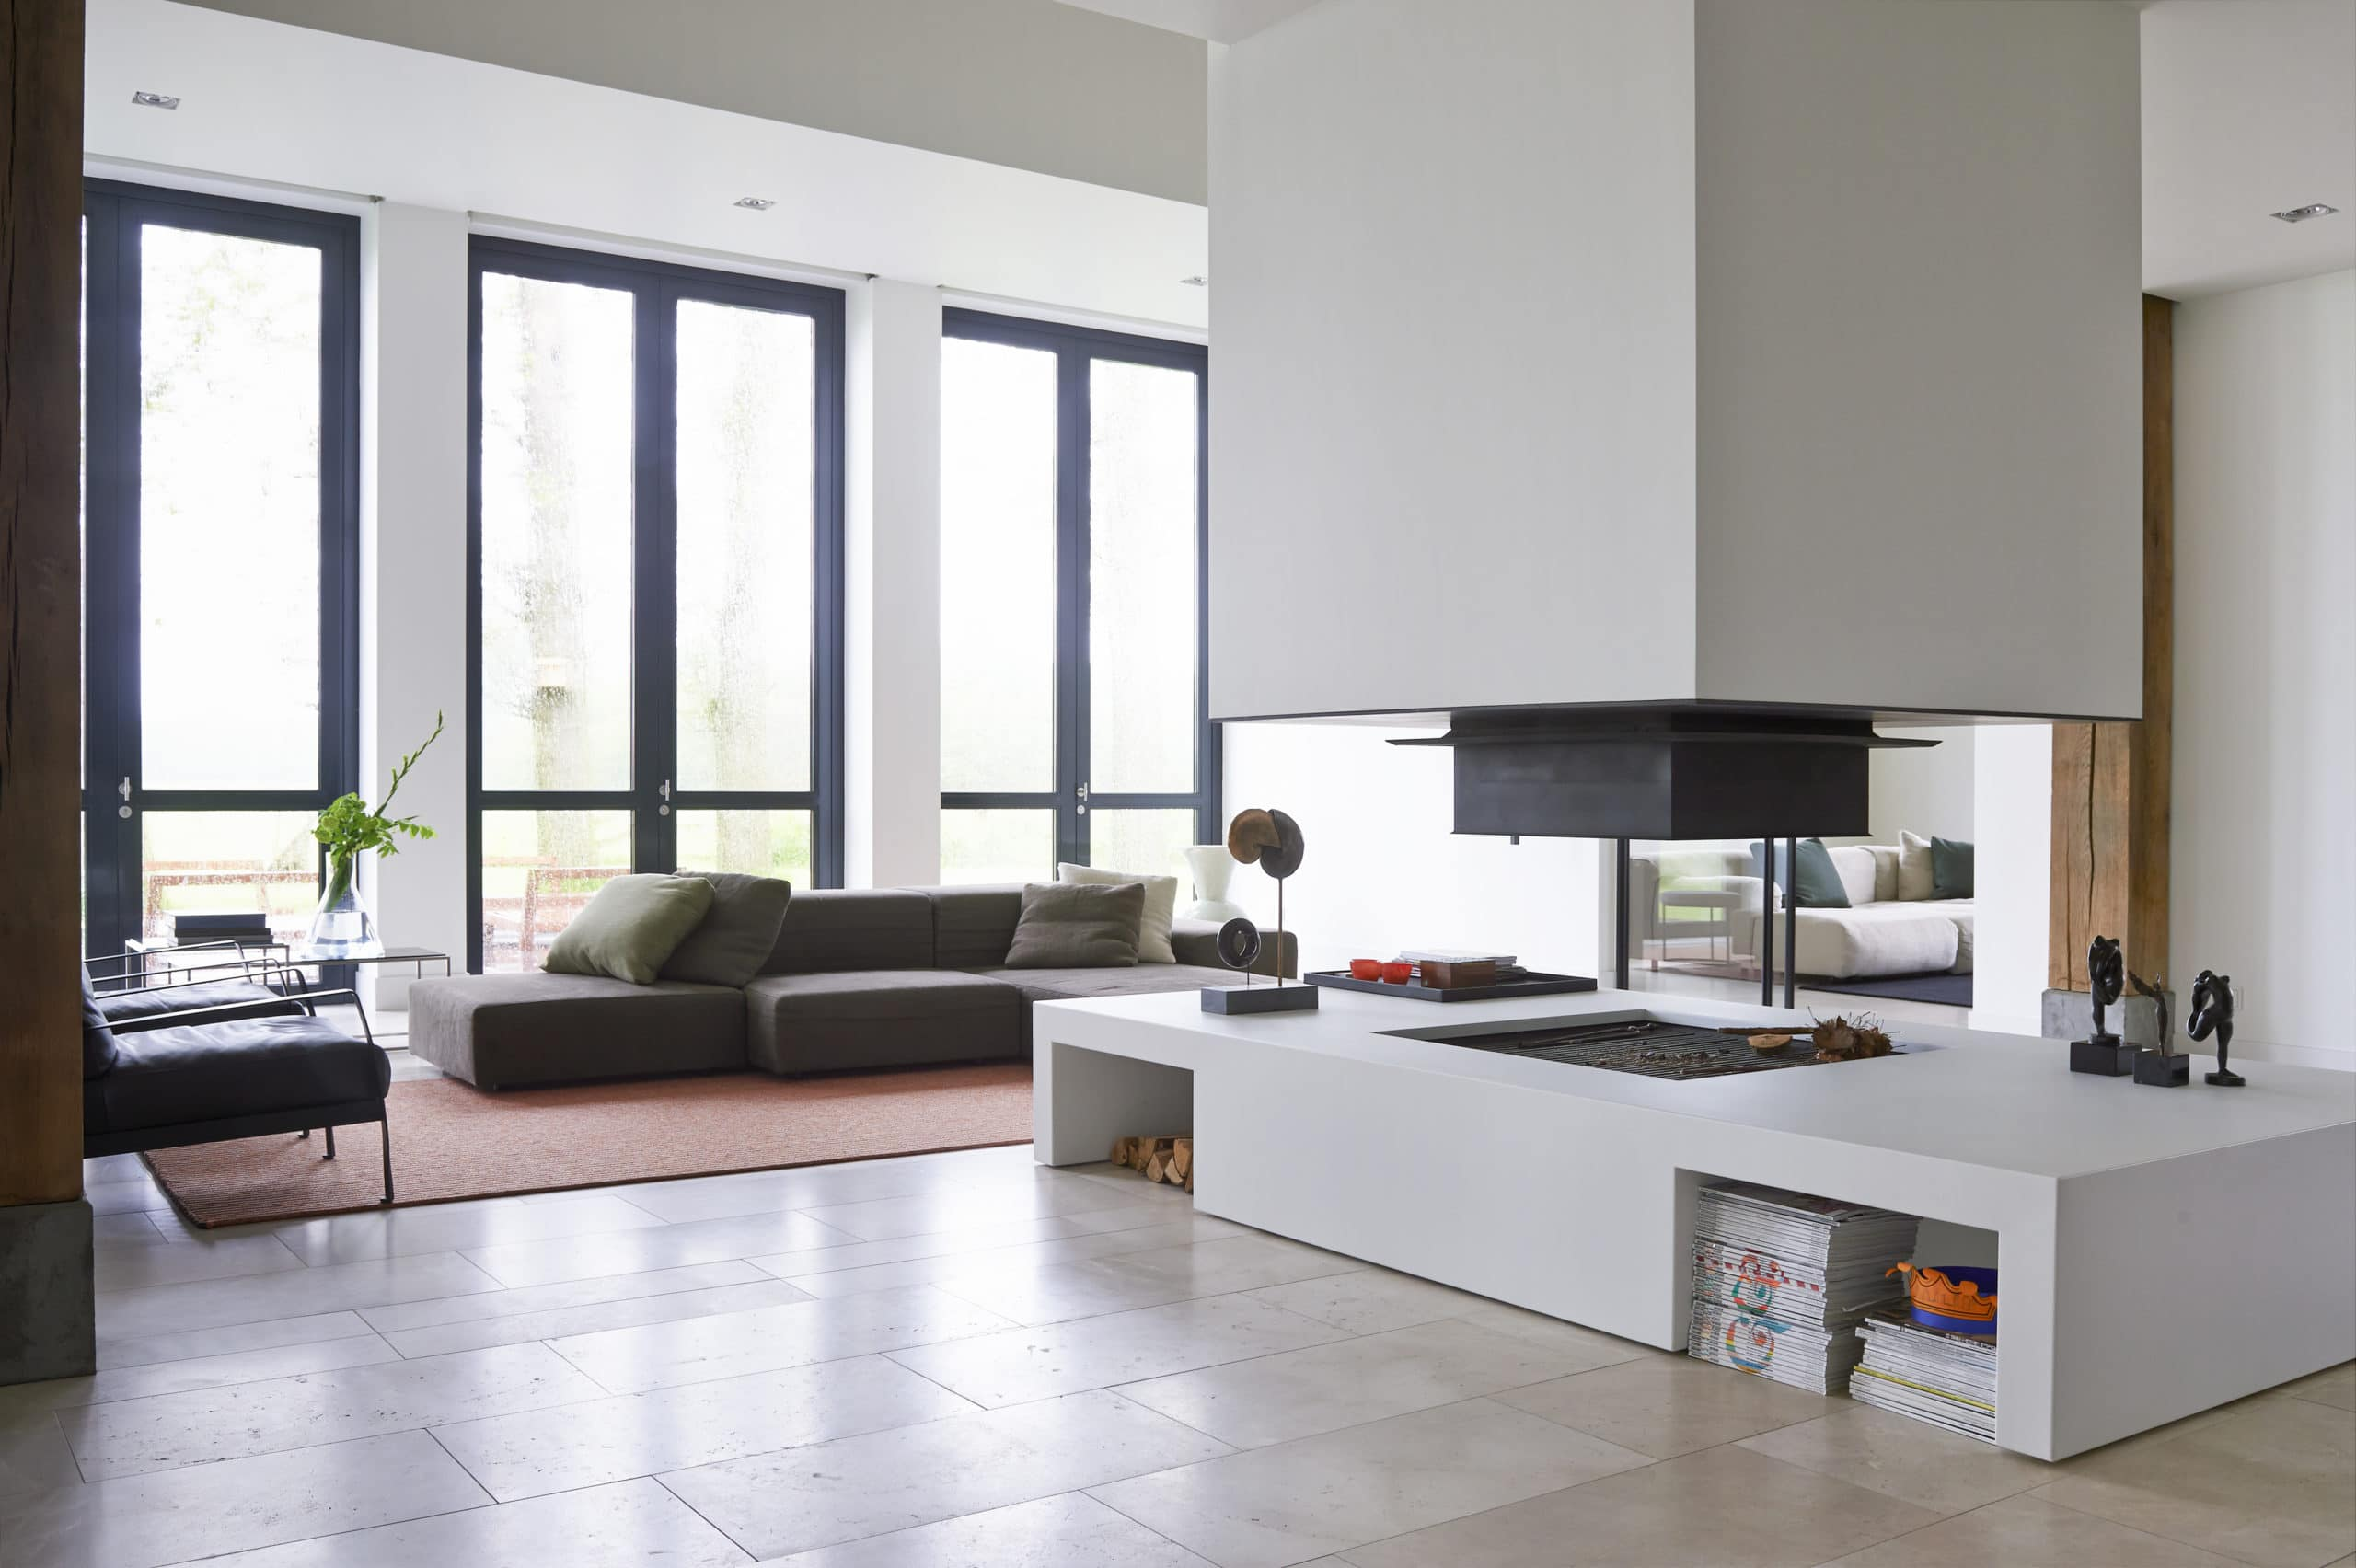 Dis Studio interior design project living room and kitchen family home Drenthe